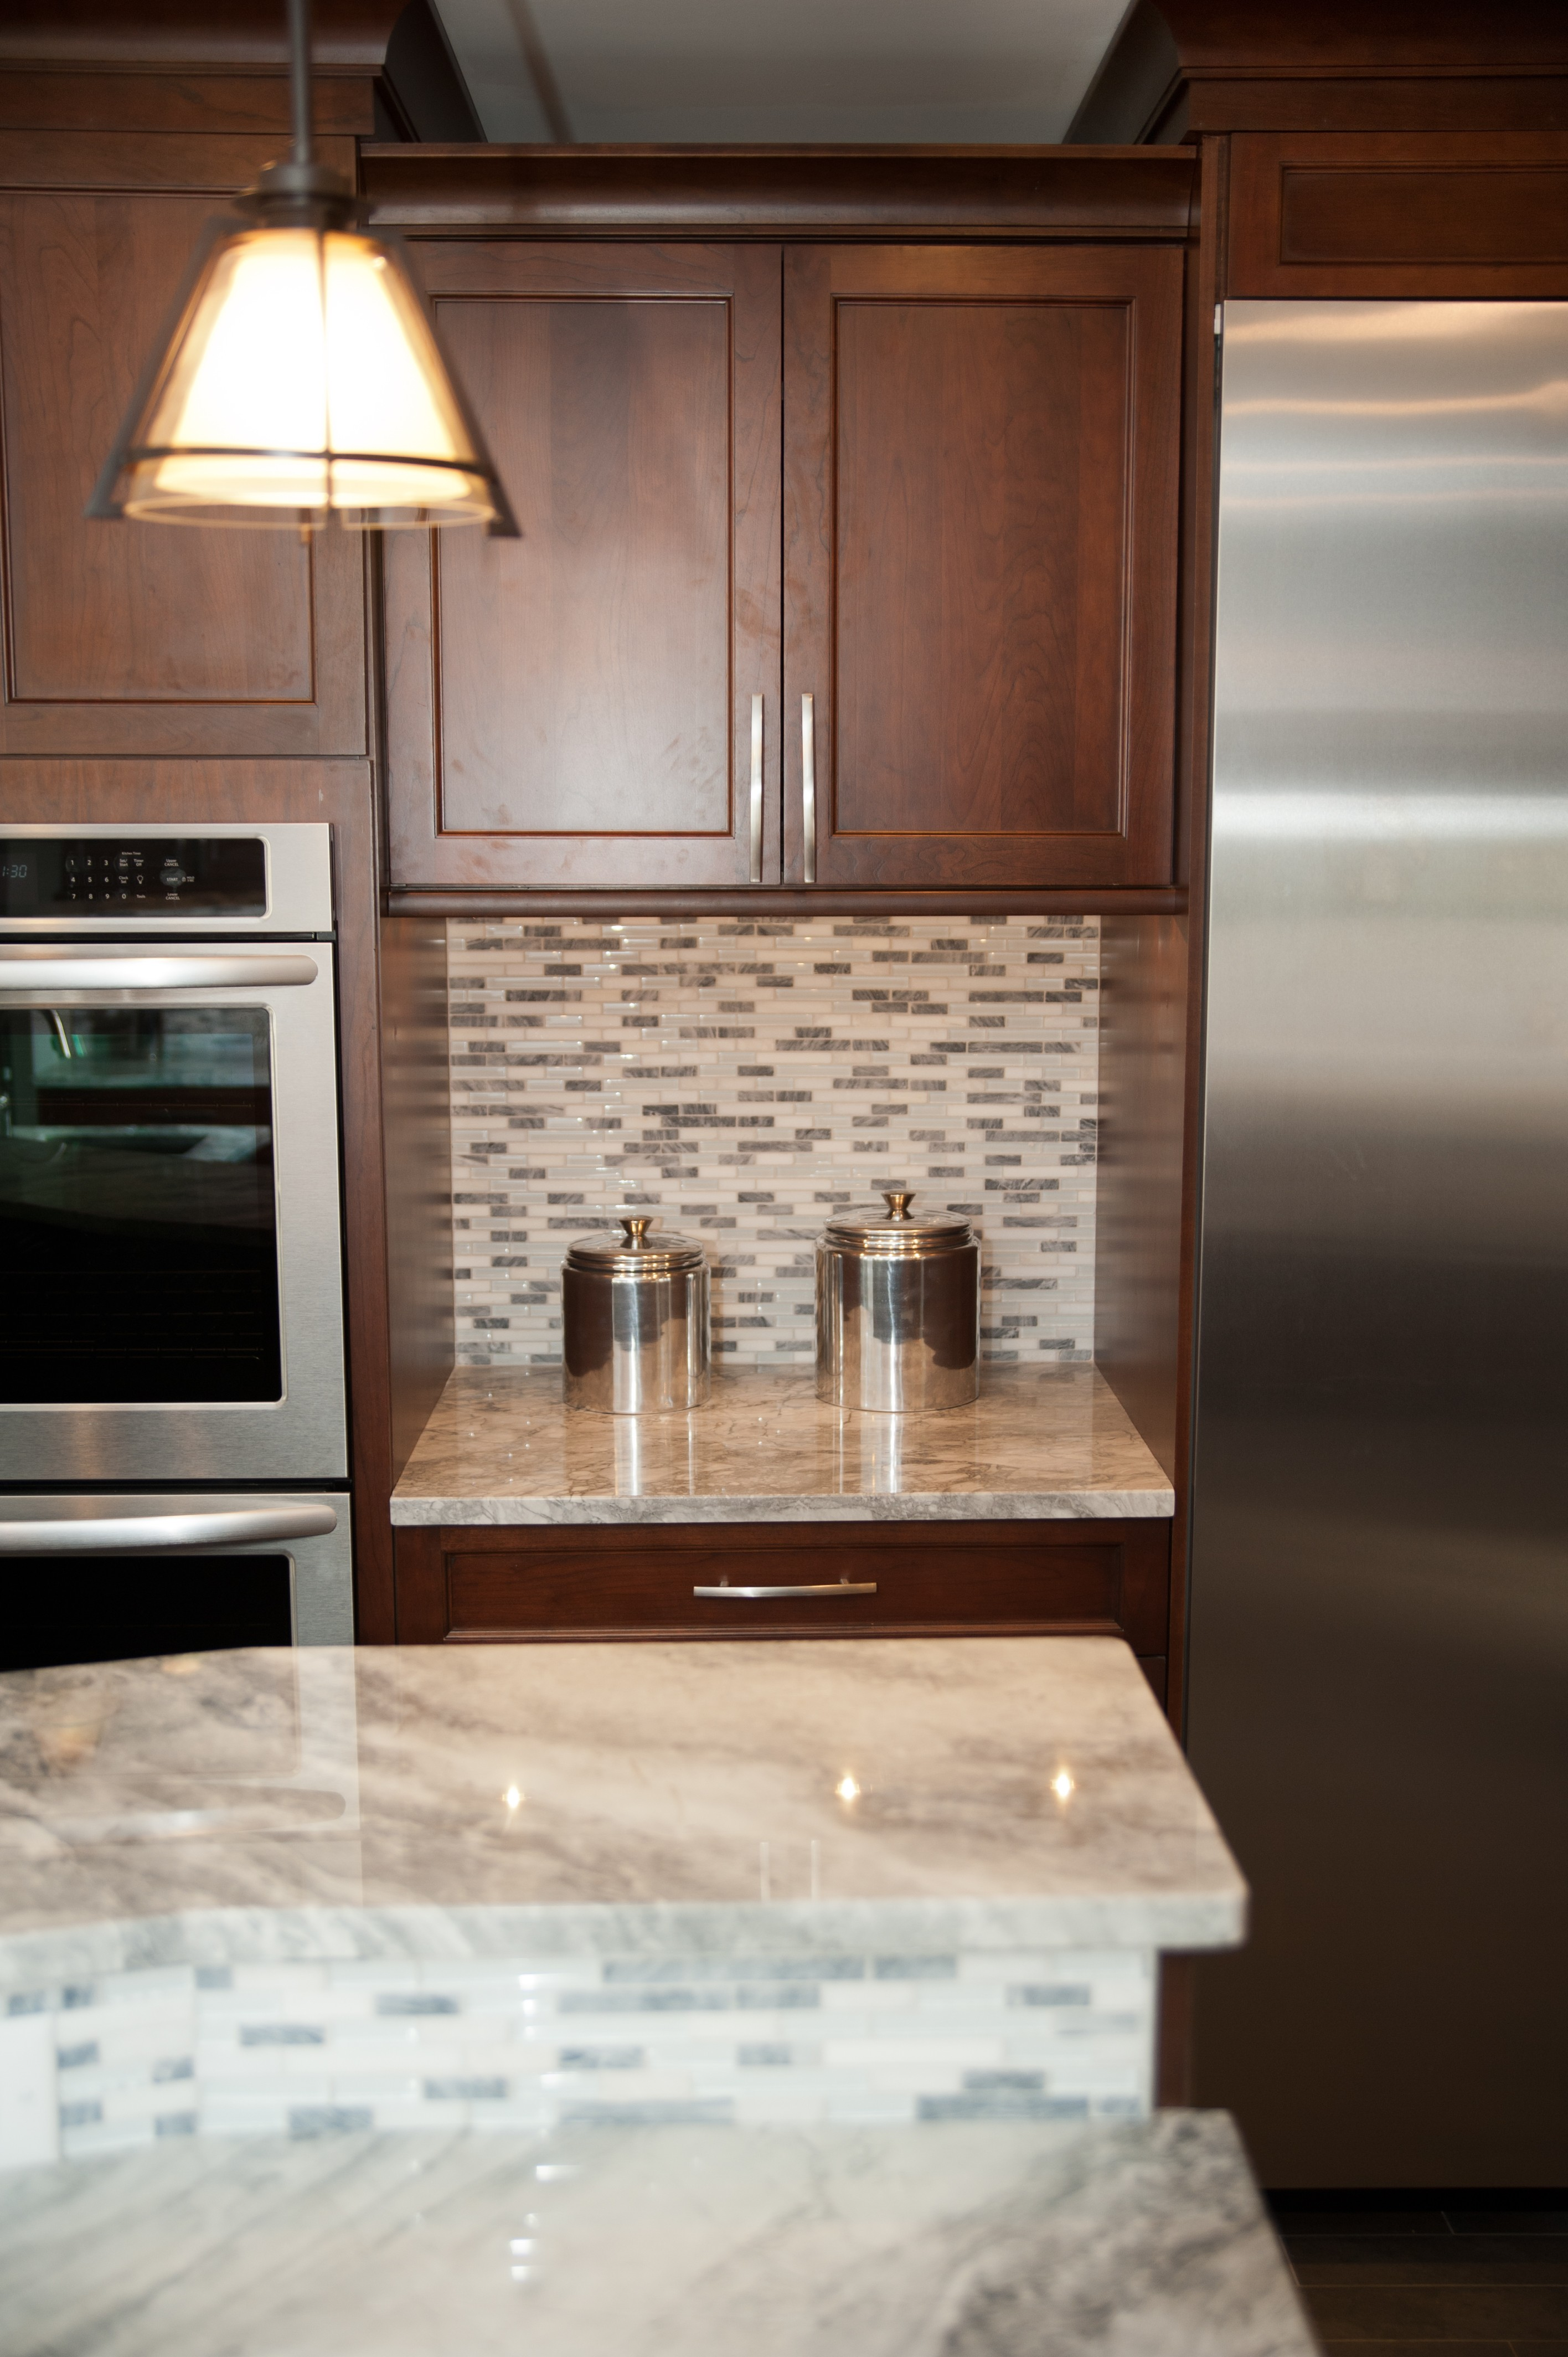 Morris County Nj Kitchen Design Build Remodeling From The Planners 12